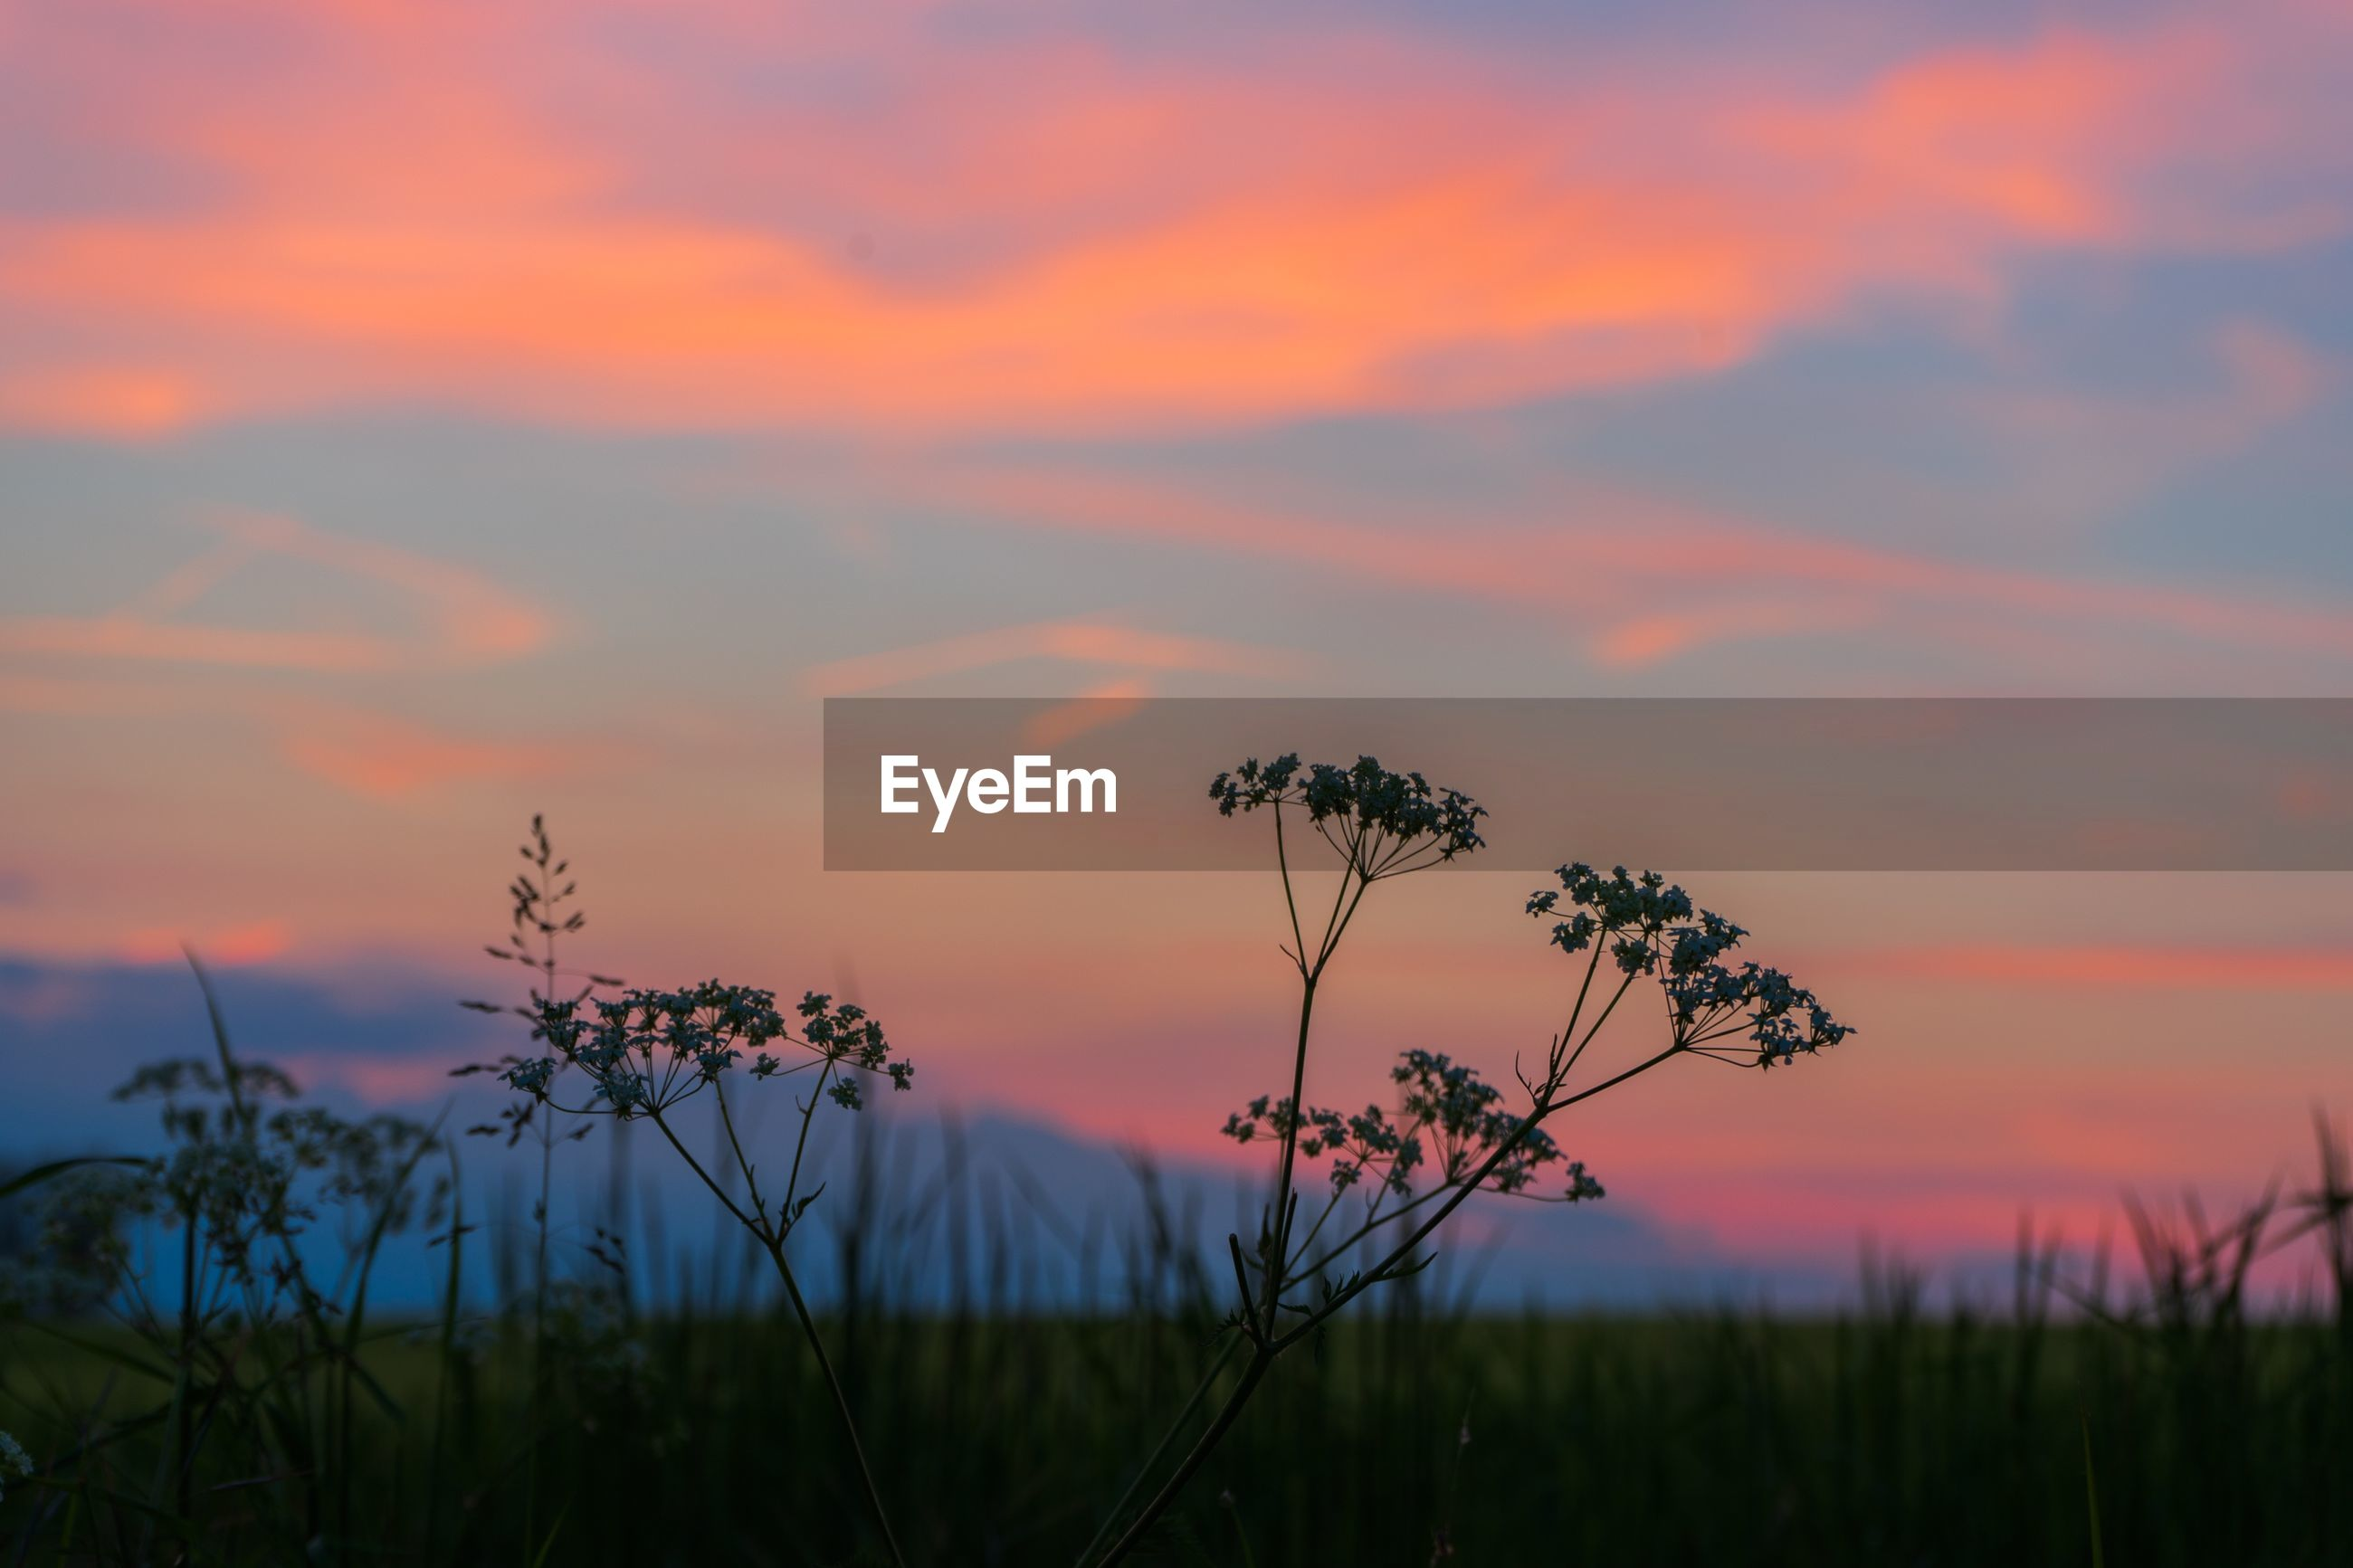 SCENIC VIEW OF SILHOUETTE PLANTS ON FIELD AGAINST ROMANTIC SKY